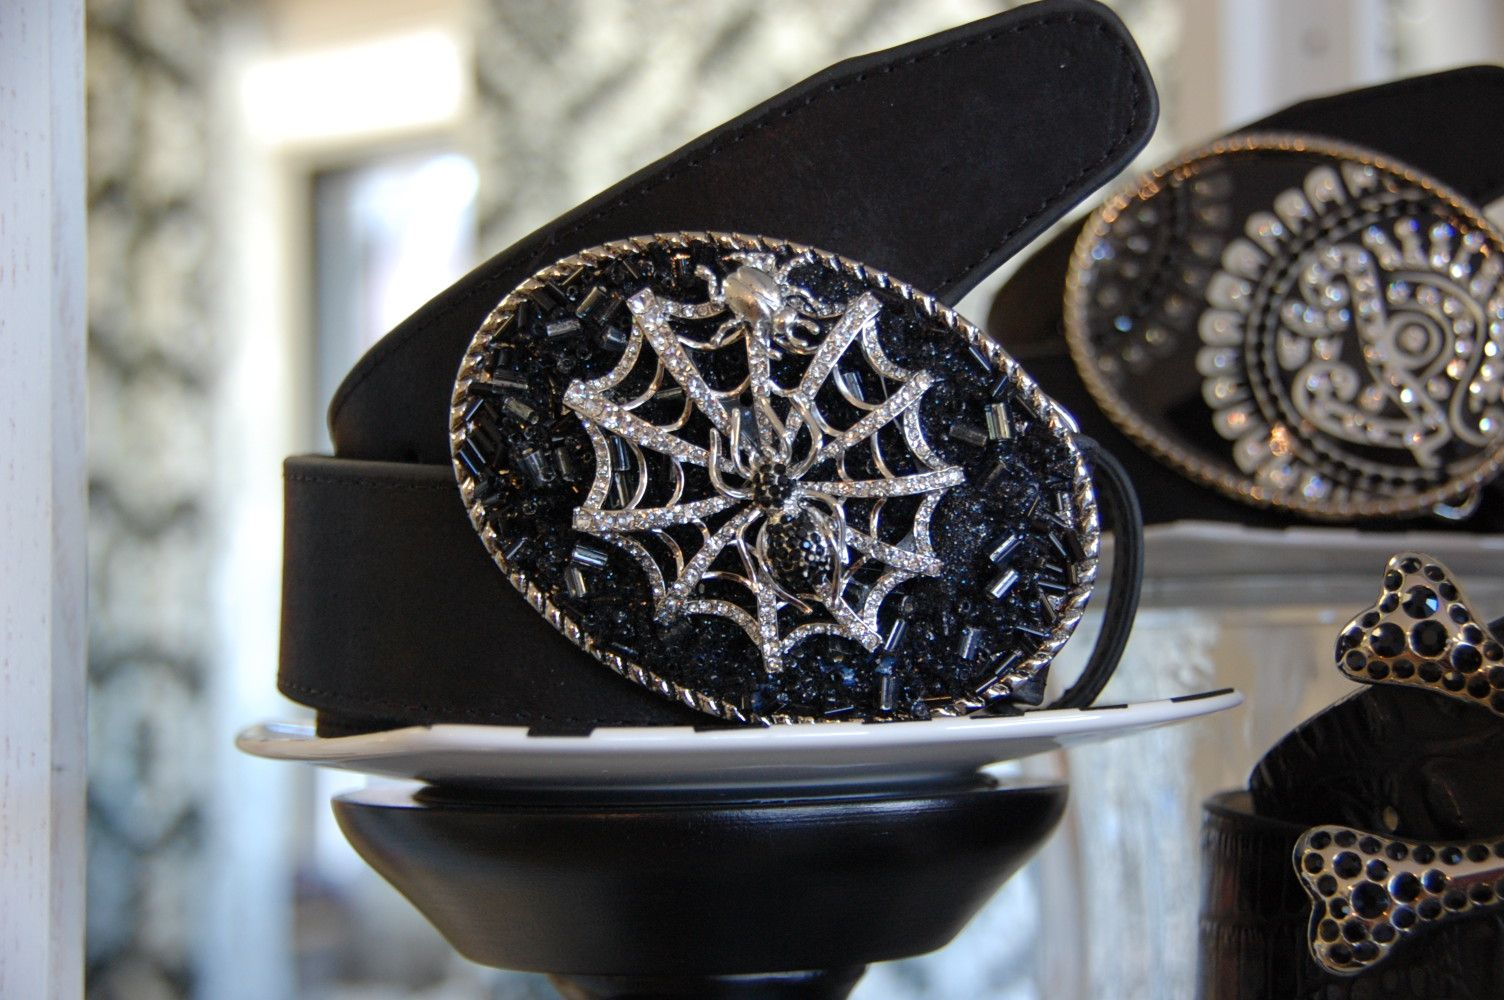 Another spooky buckle...